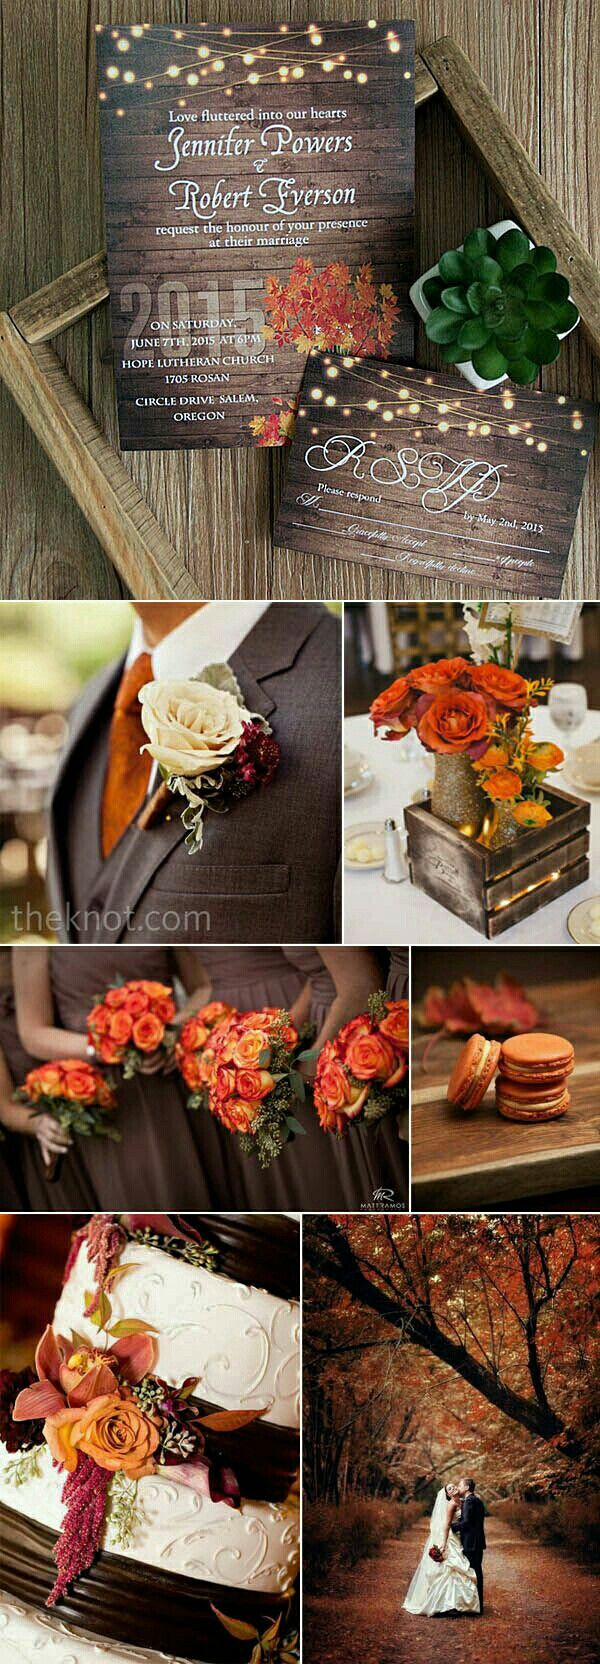 Wedding decorations rustic october 2018 Pin by Teela Ryan on Fall wedding ideas   Pinterest  Wedding